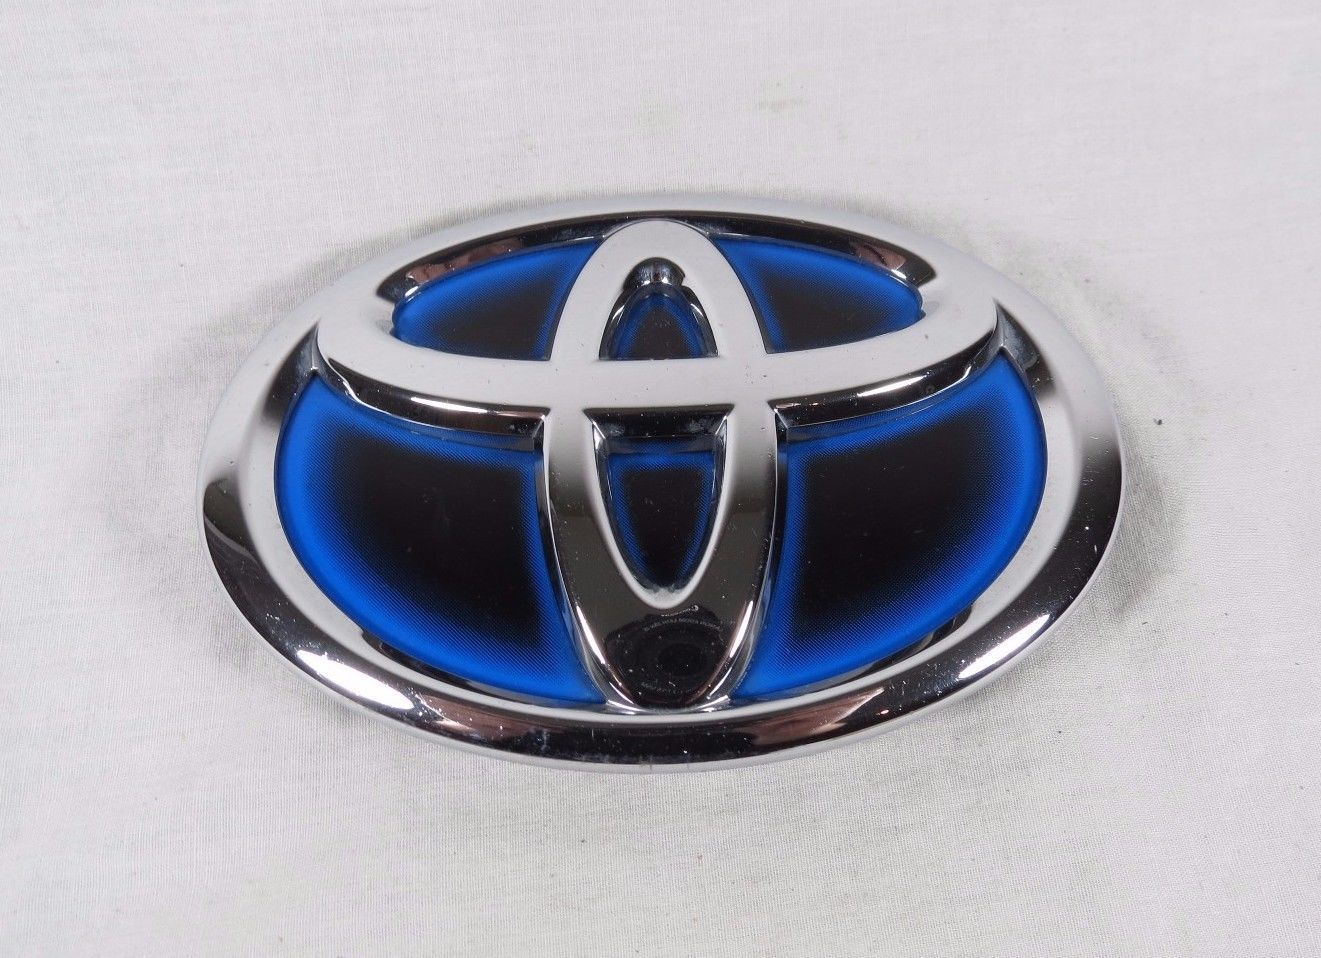 Cool Great Toyota Hybrid Grille Emblem Prius Camry Genuine Oem Grill Life With Machine Diy Turbo Timer Installation For Perodua Kancil Badge Sign Symbol Logo 2017